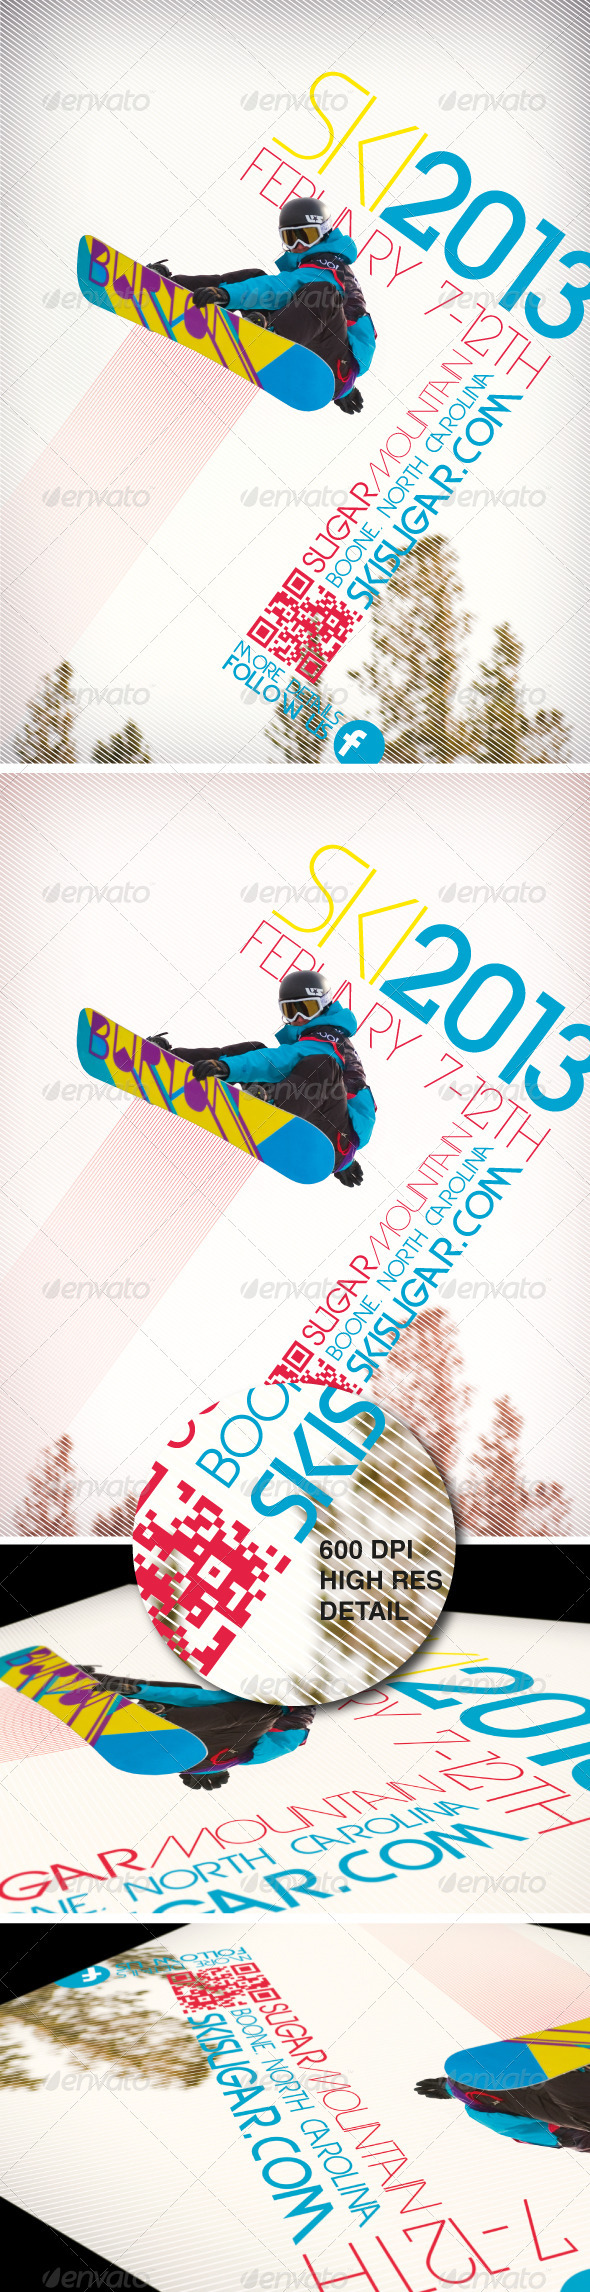 GraphicRiver A4 Ski & Snowboard Winter Event Party Flyer 3687844